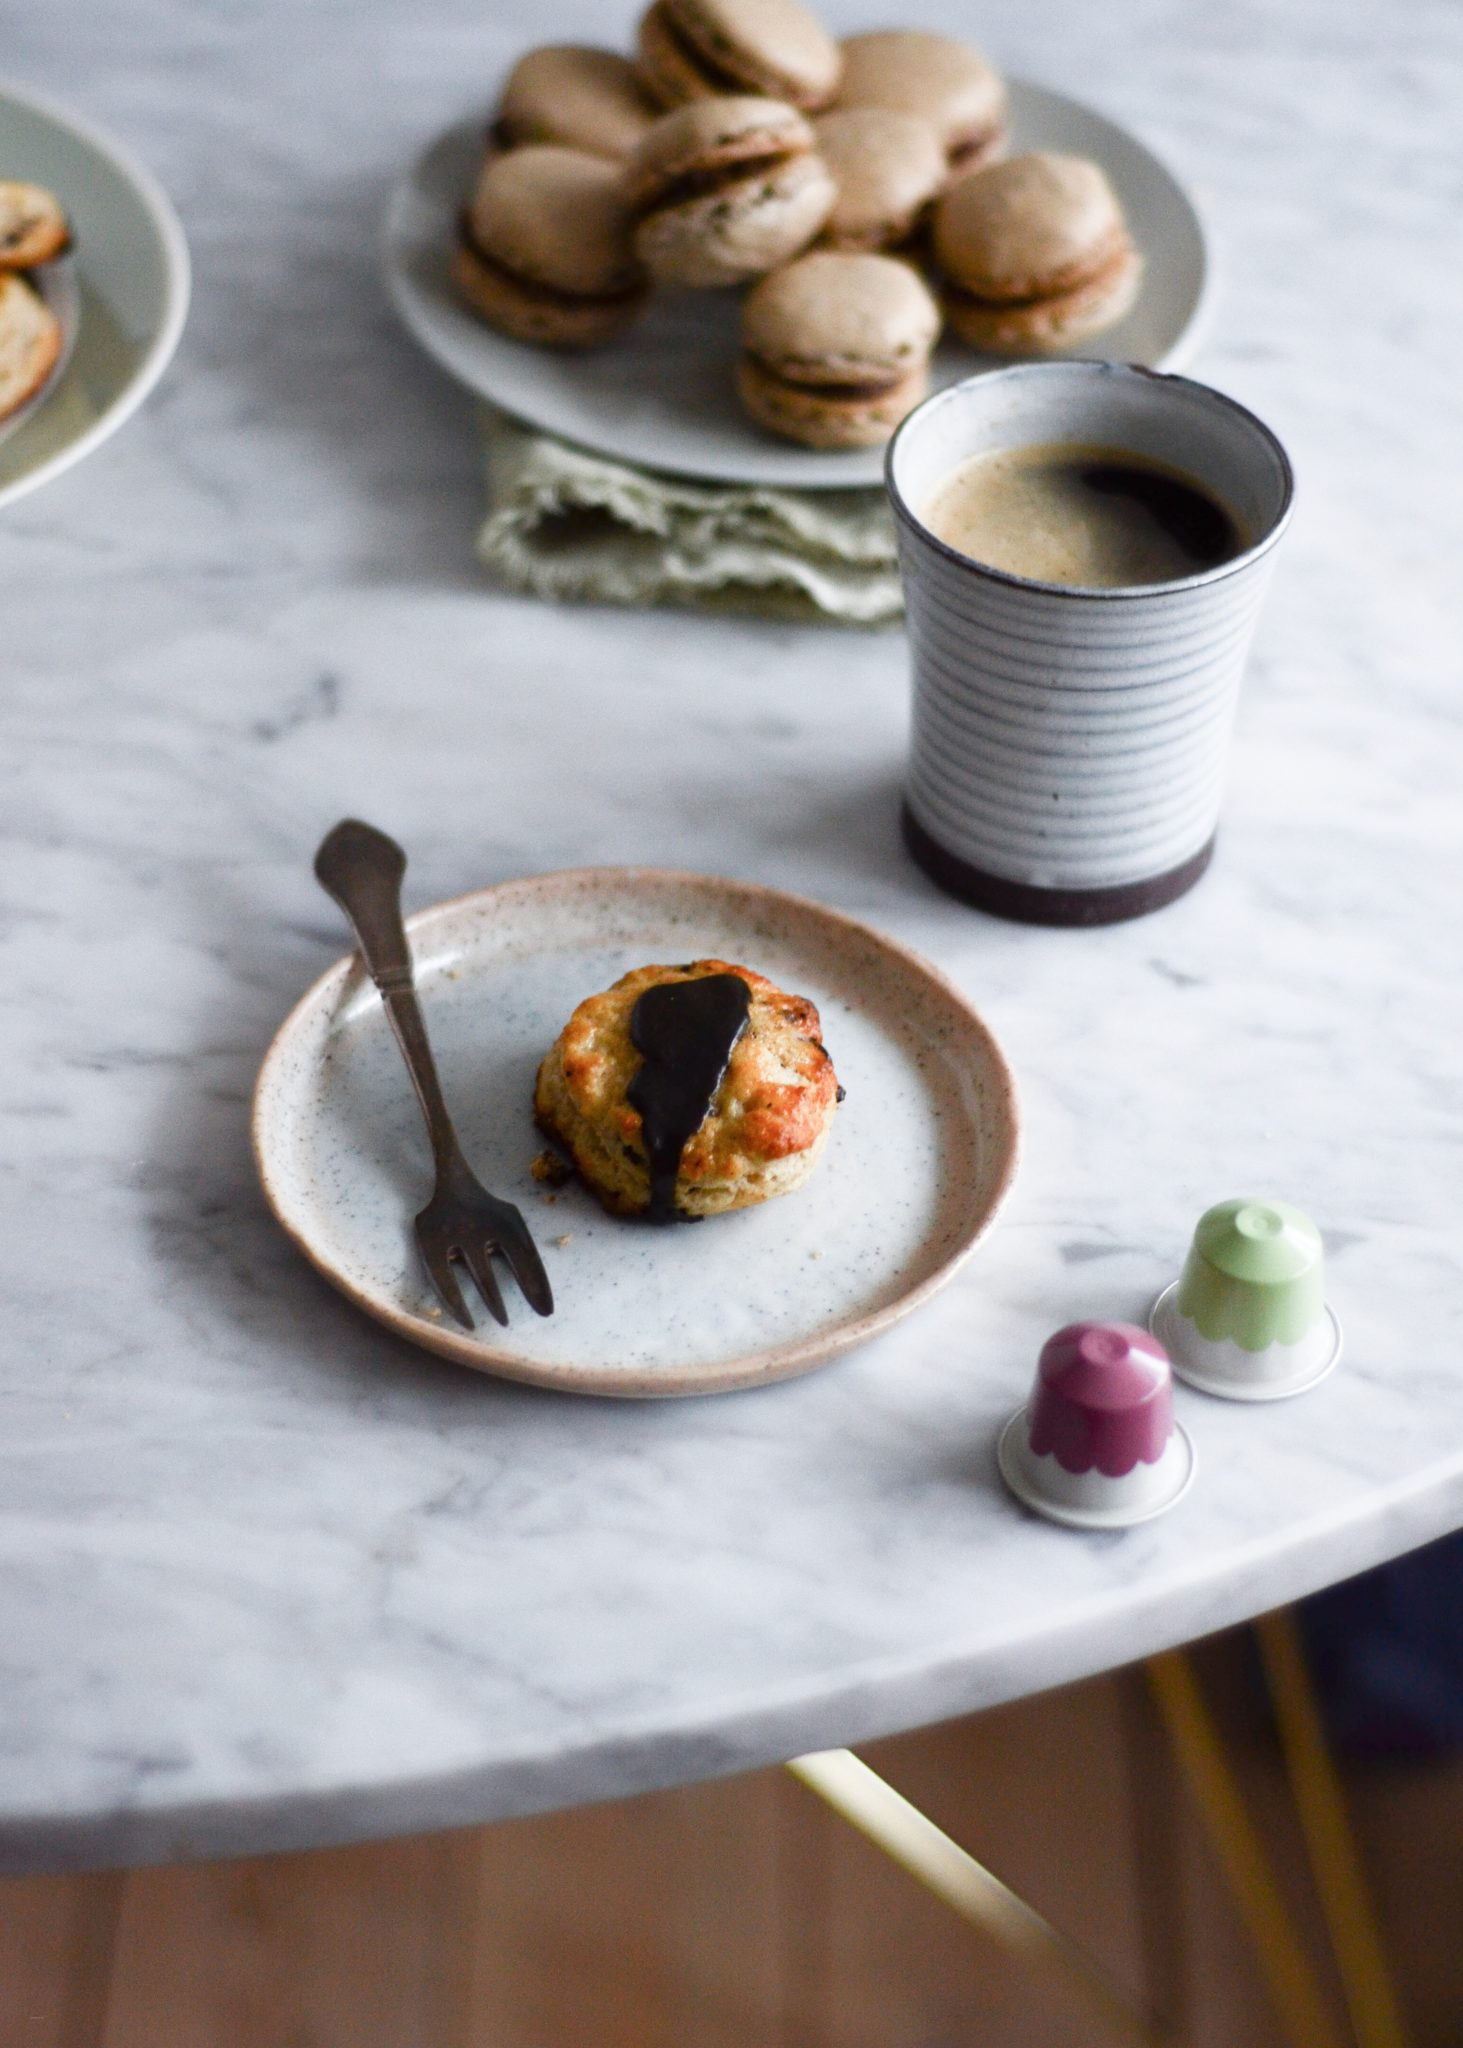 scones-afternoon-coffee-nespresso-123